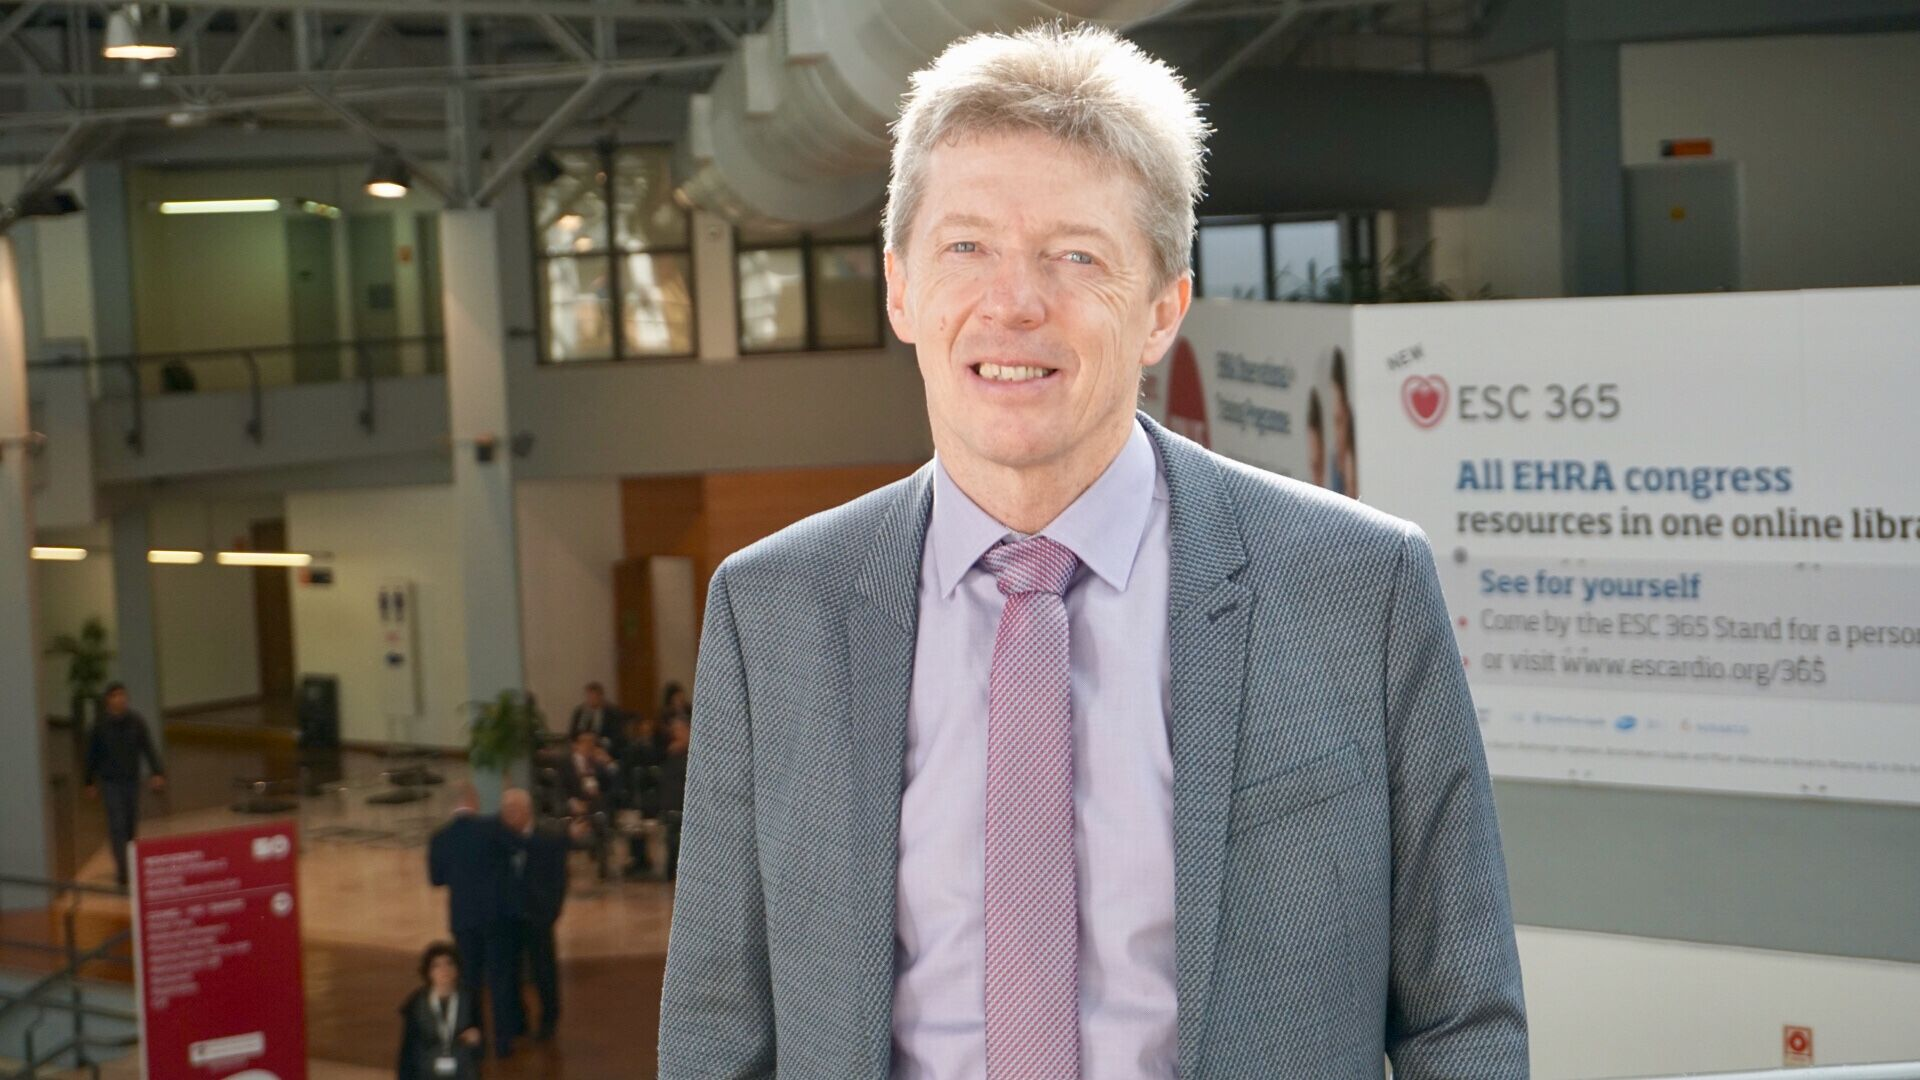 Helmut Pürerfellner, EHRA 2019 – Recent Developments in High-power Short-duration Ablation